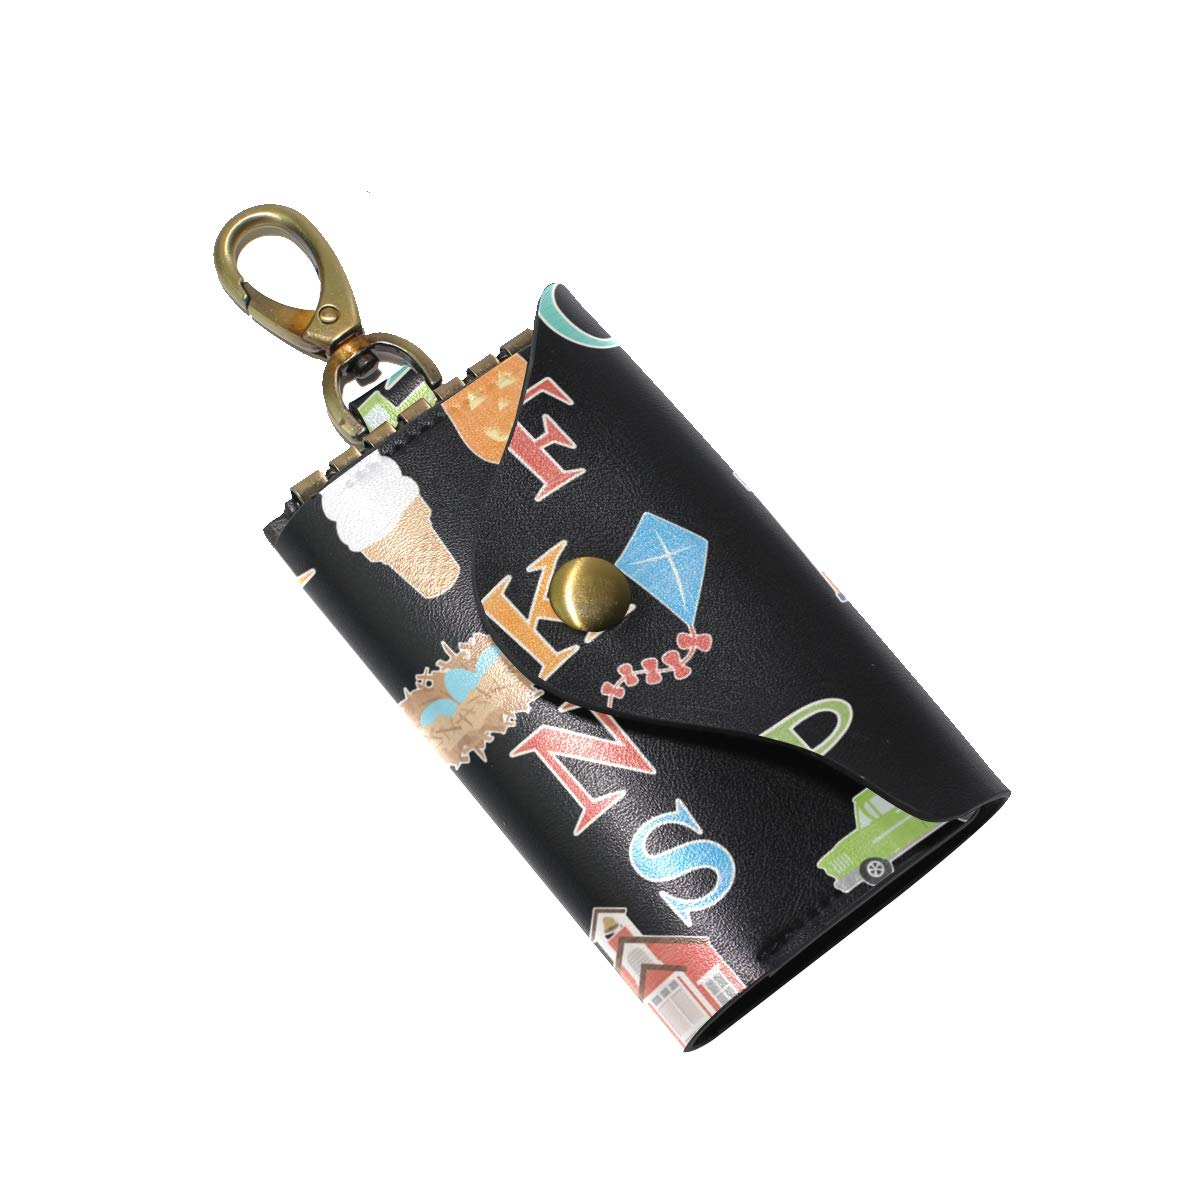 KEAKIA A To Z Alphabets Leather Key Case Wallets Tri-fold Key Holder Keychains with 6 Hooks 2 Slot Snap Closure for Men Women